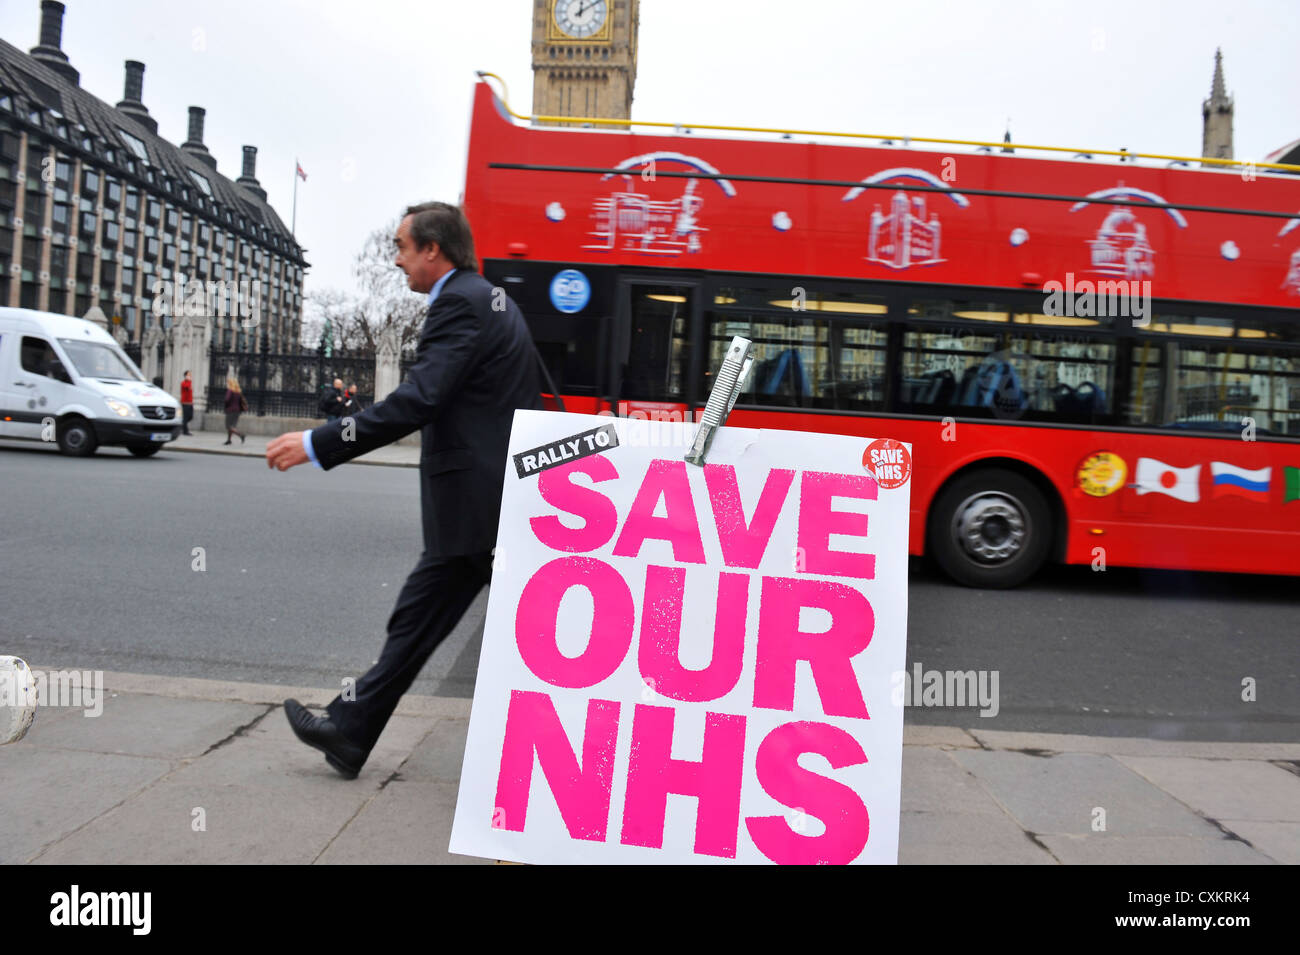 Save our NHS banner outside the houses of Parliament, Big Ben, London UK - Stock Image